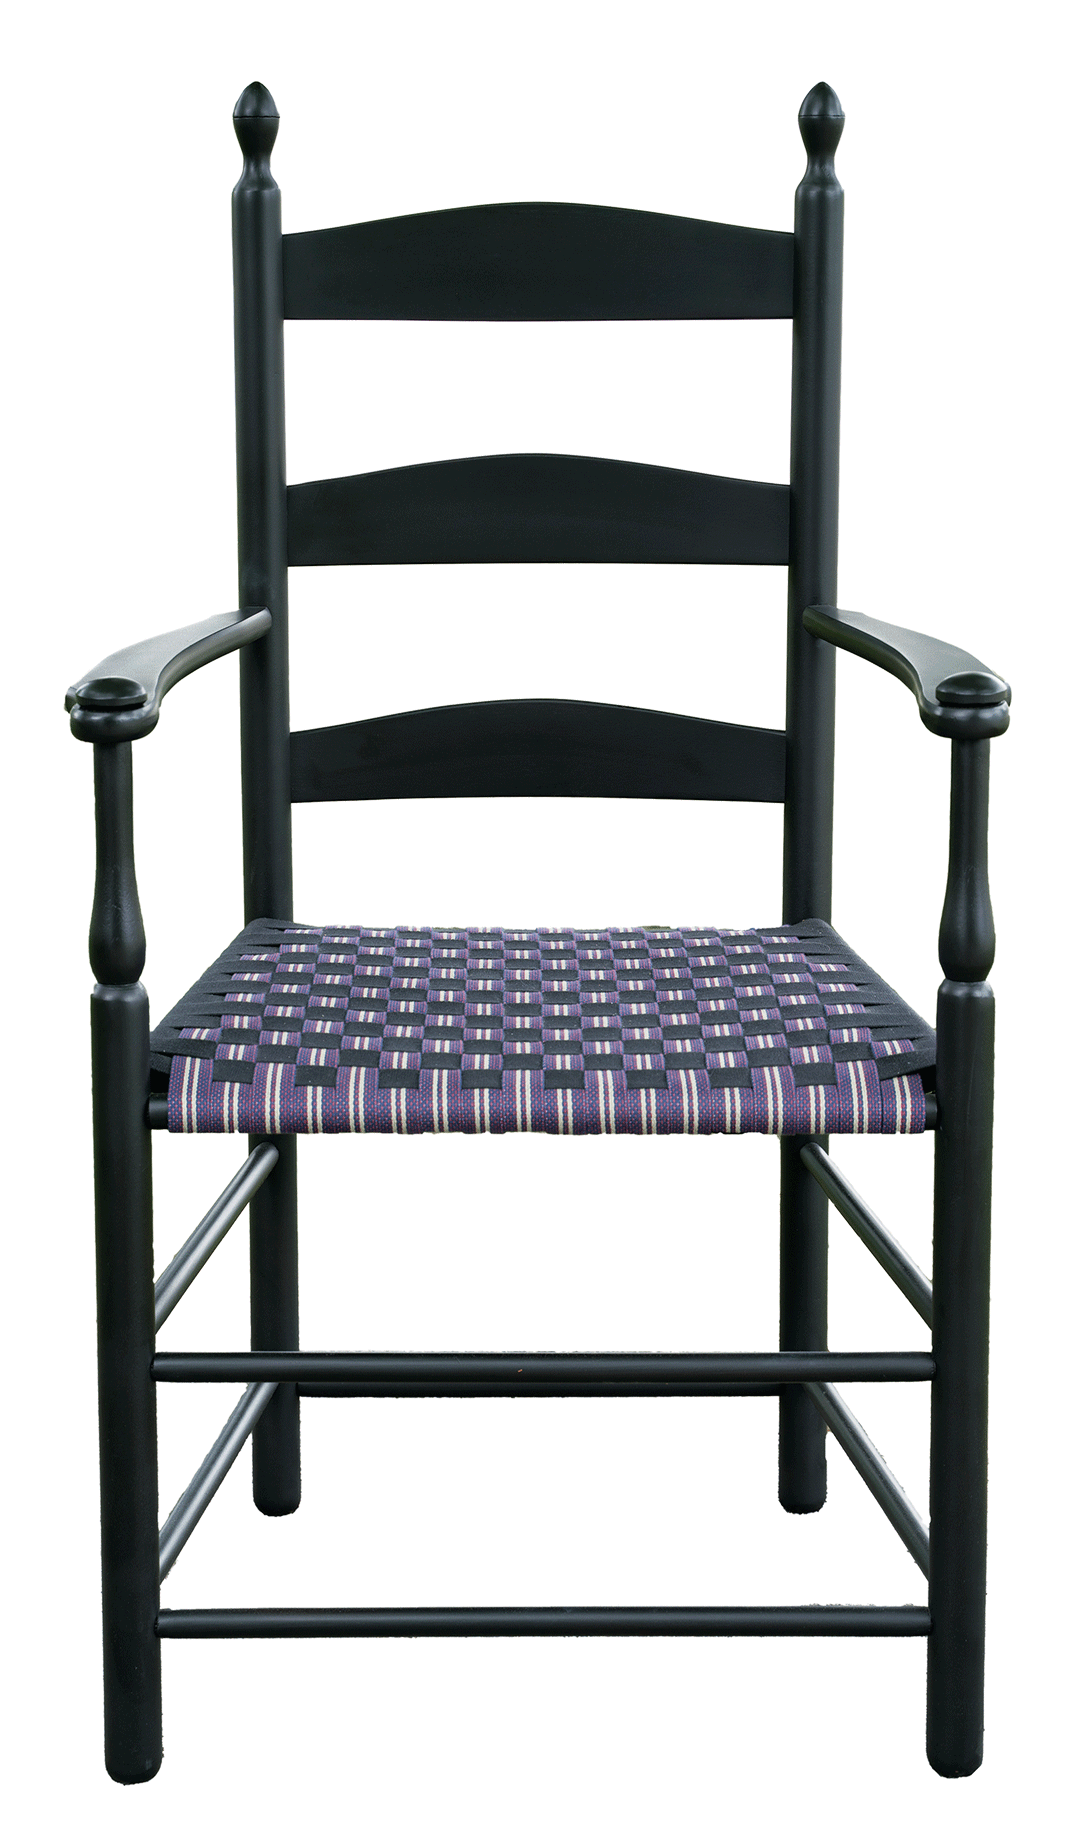 Ross Timberlake Shaker-style chair